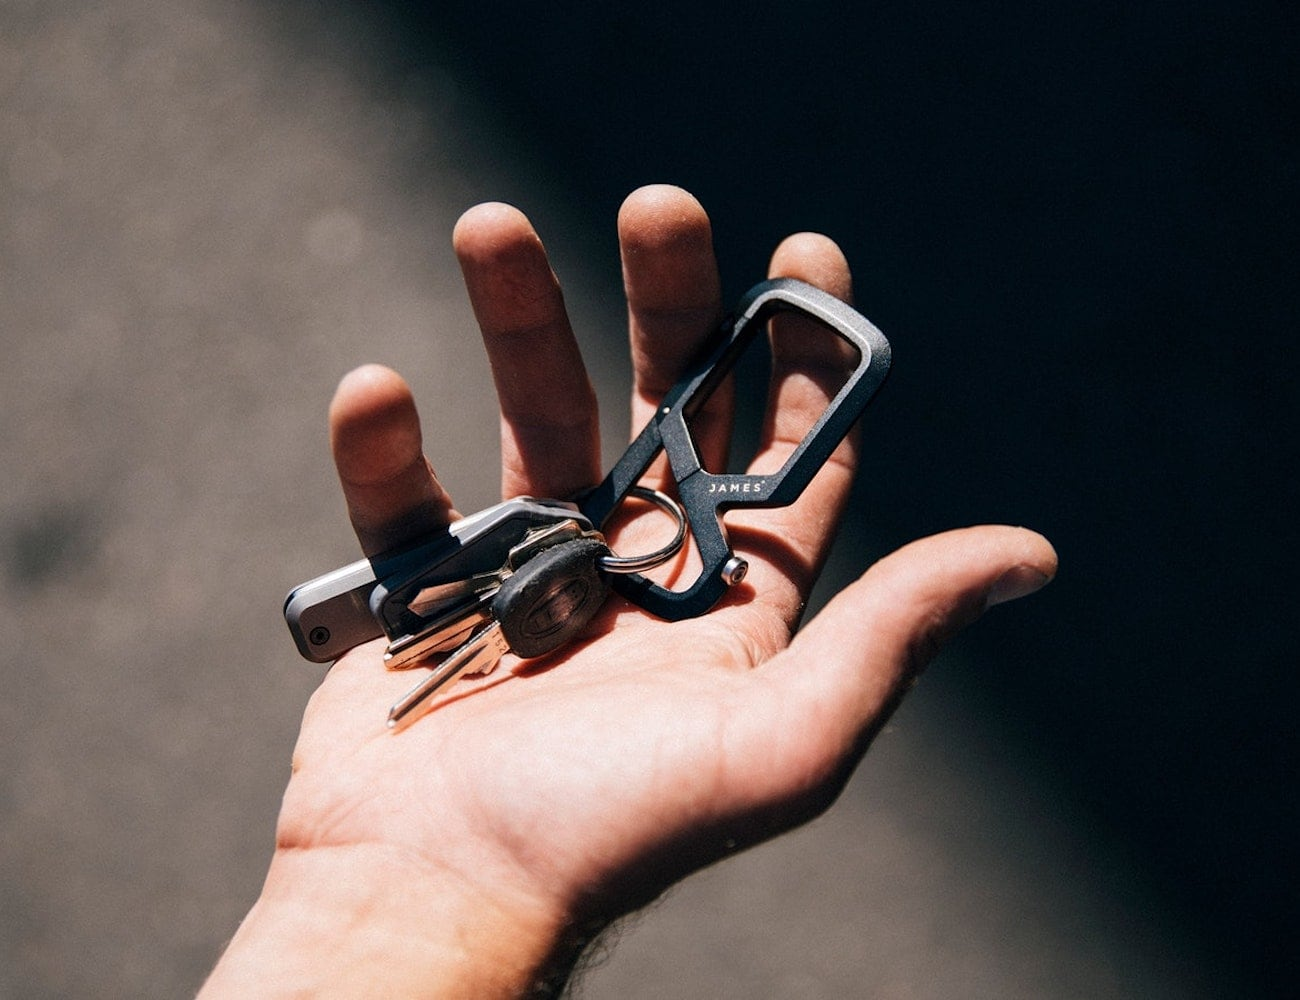 The James Brand Mehlville Dual Compartment Carabiner